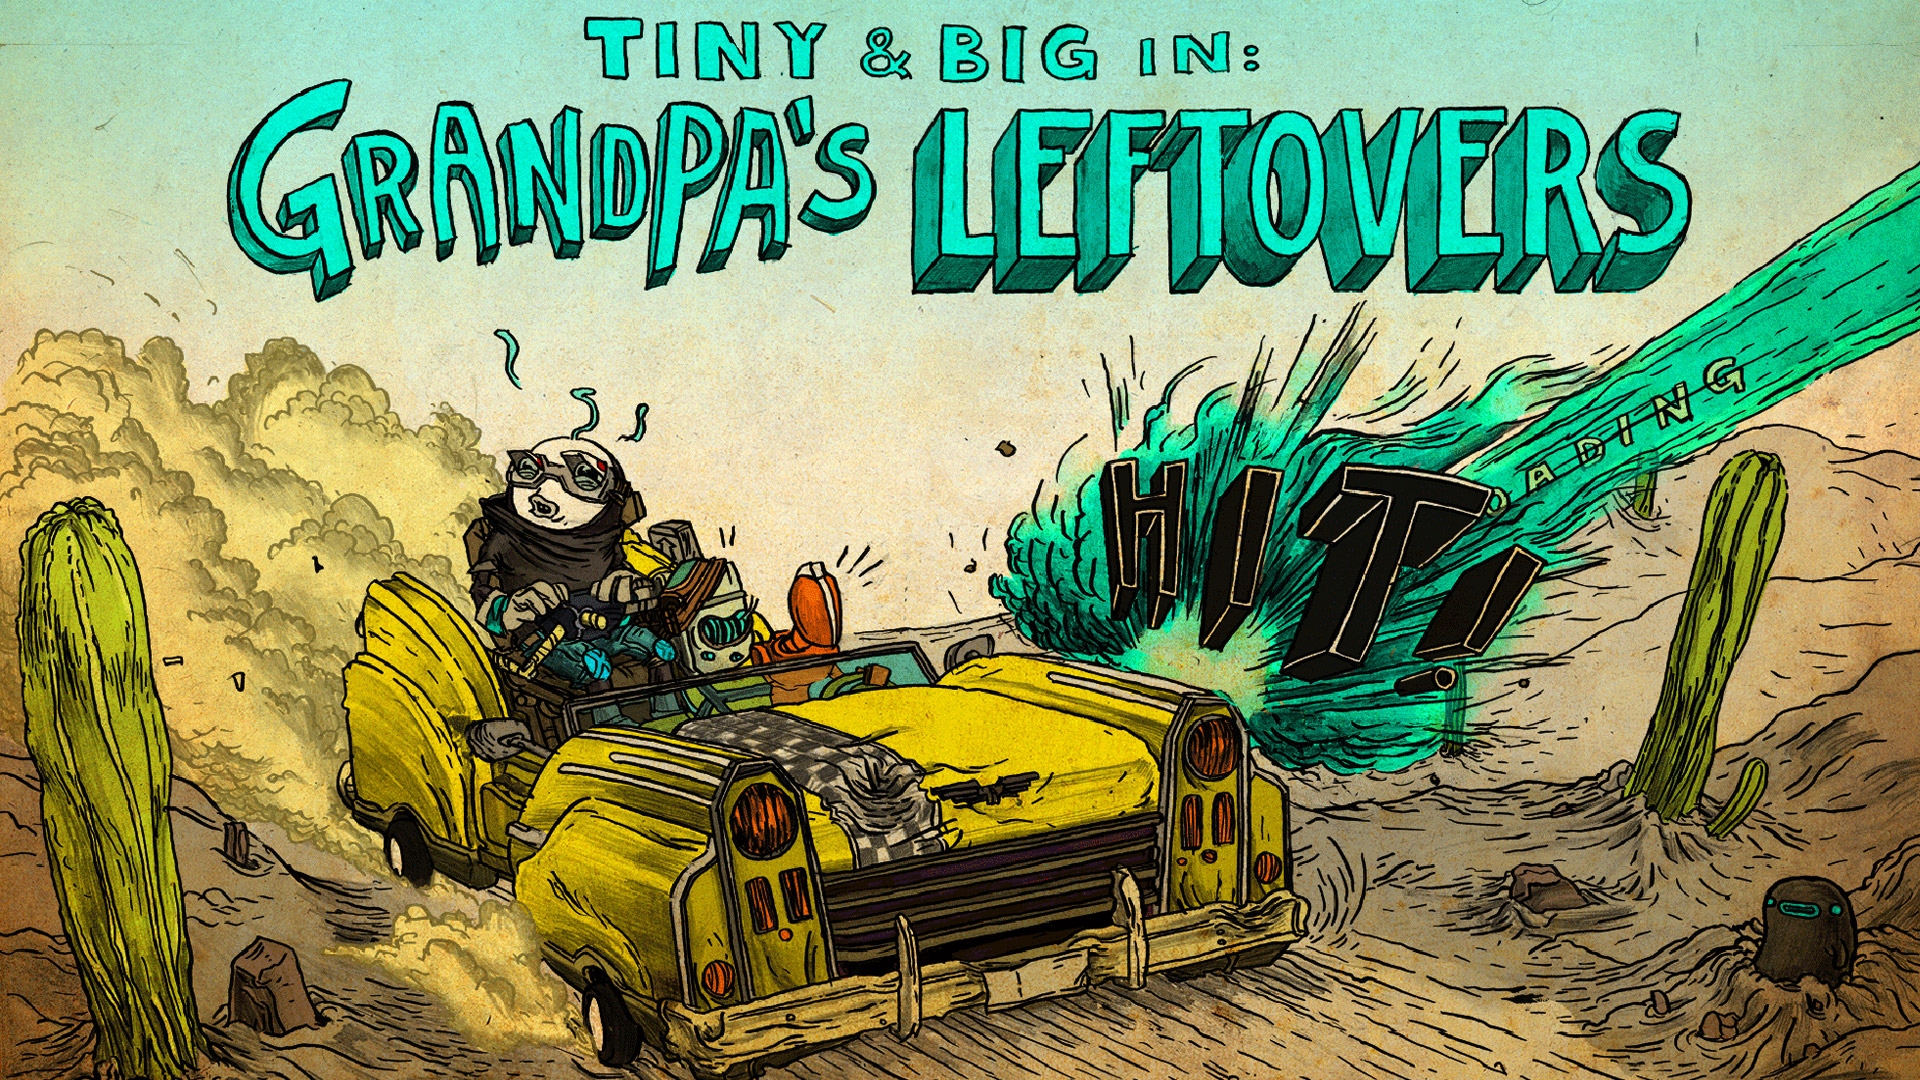 Free Tiny and Big: Grandpa's Leftovers Wallpaper in 1920x1080